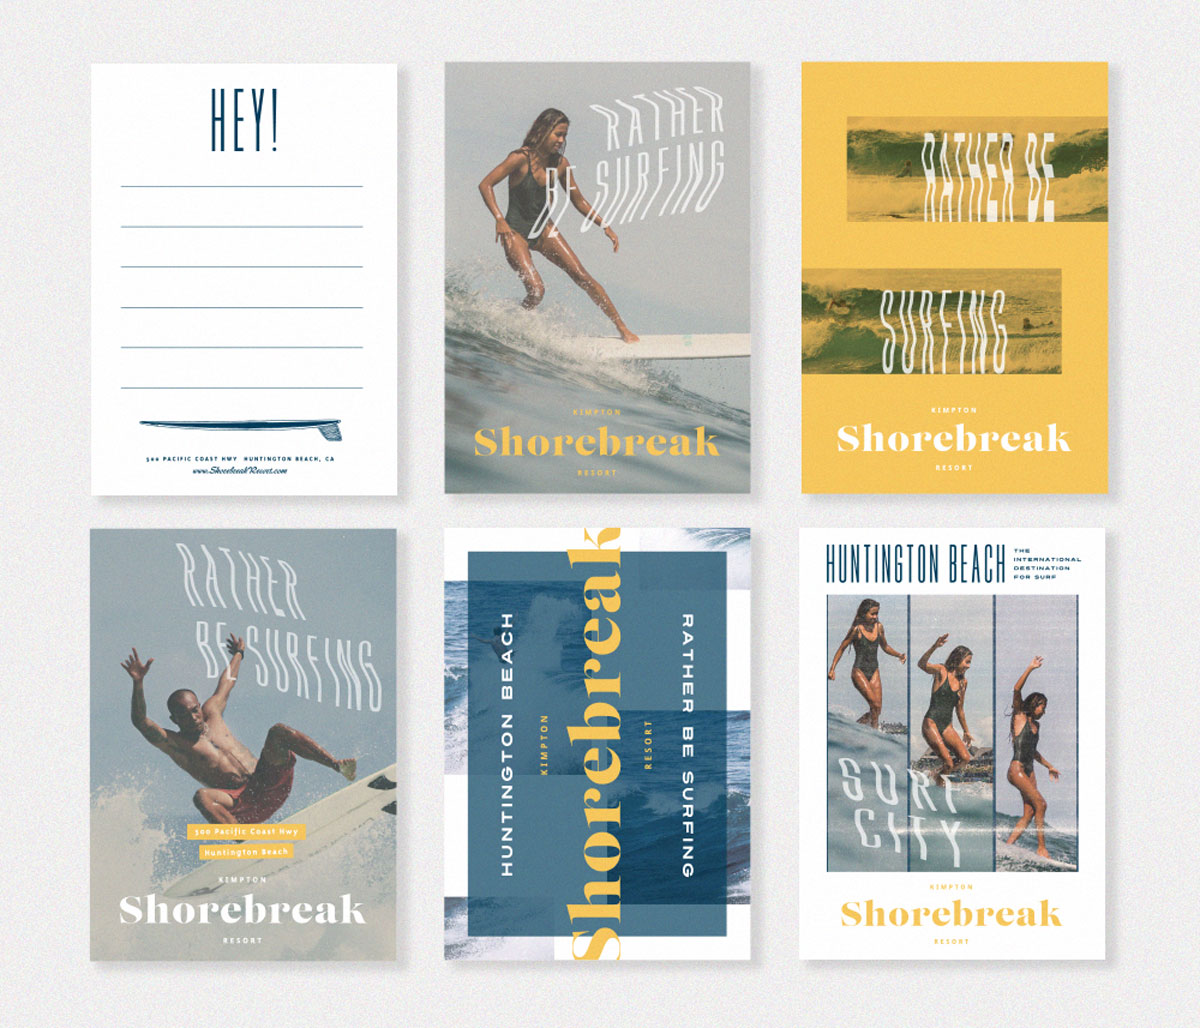 shorebreak_postcards_01